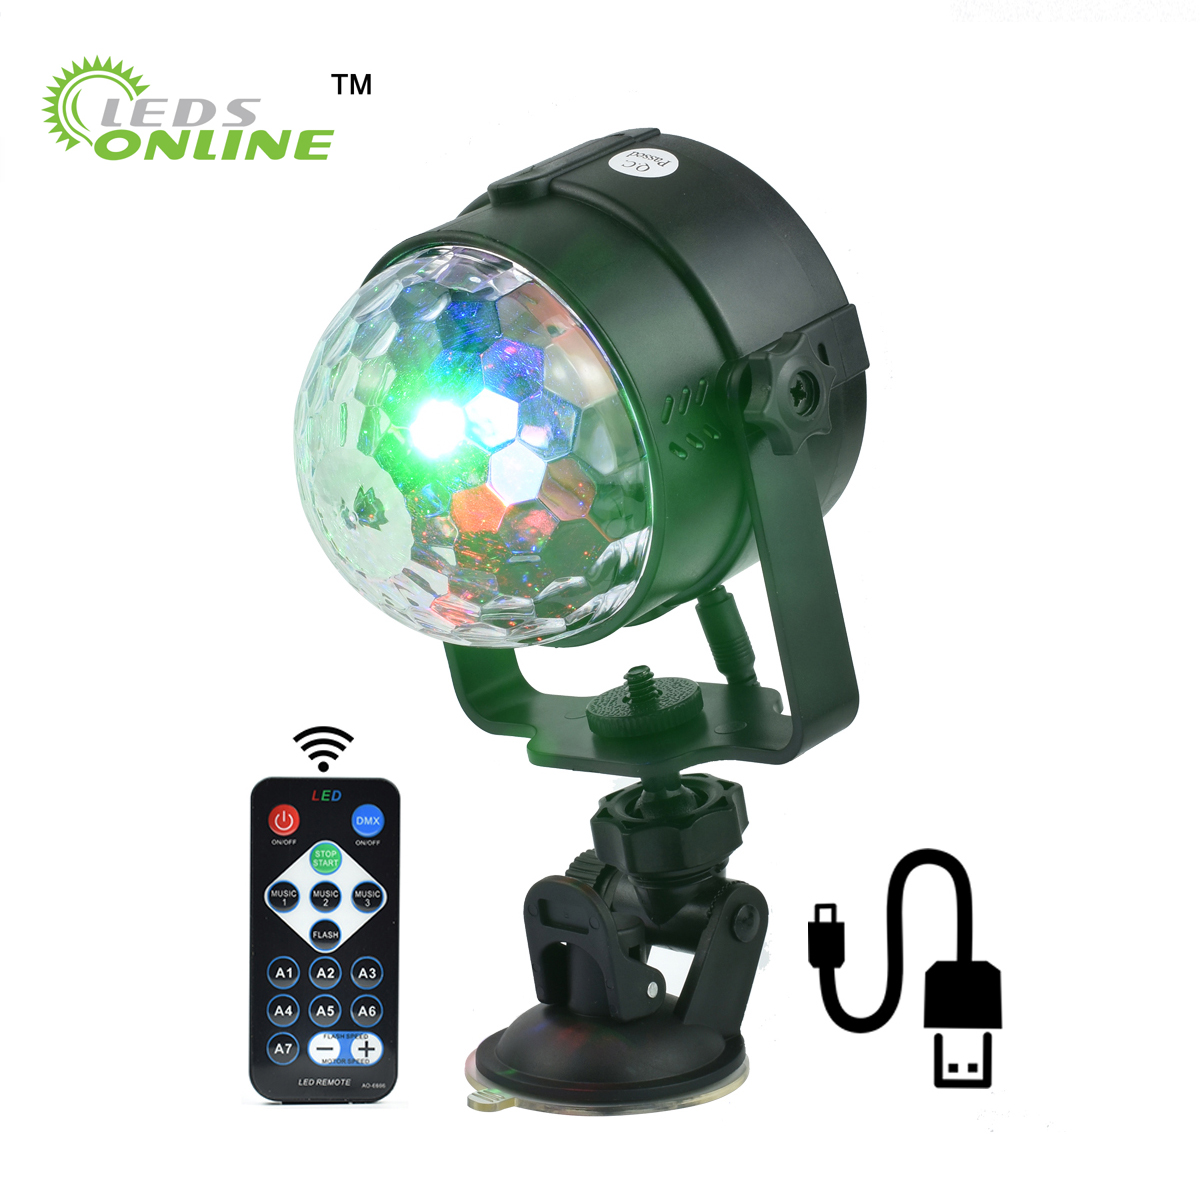 5V USB Stage Effect Light IR Remote RGB LED Crystal Magic Rotating Ball Lights Colorful for Party KTV DJ Disco Car Home Club disco rgb led stage light auto rotating ball lamp effect magic party club lights for christmas home ktv xmas wedding show pub